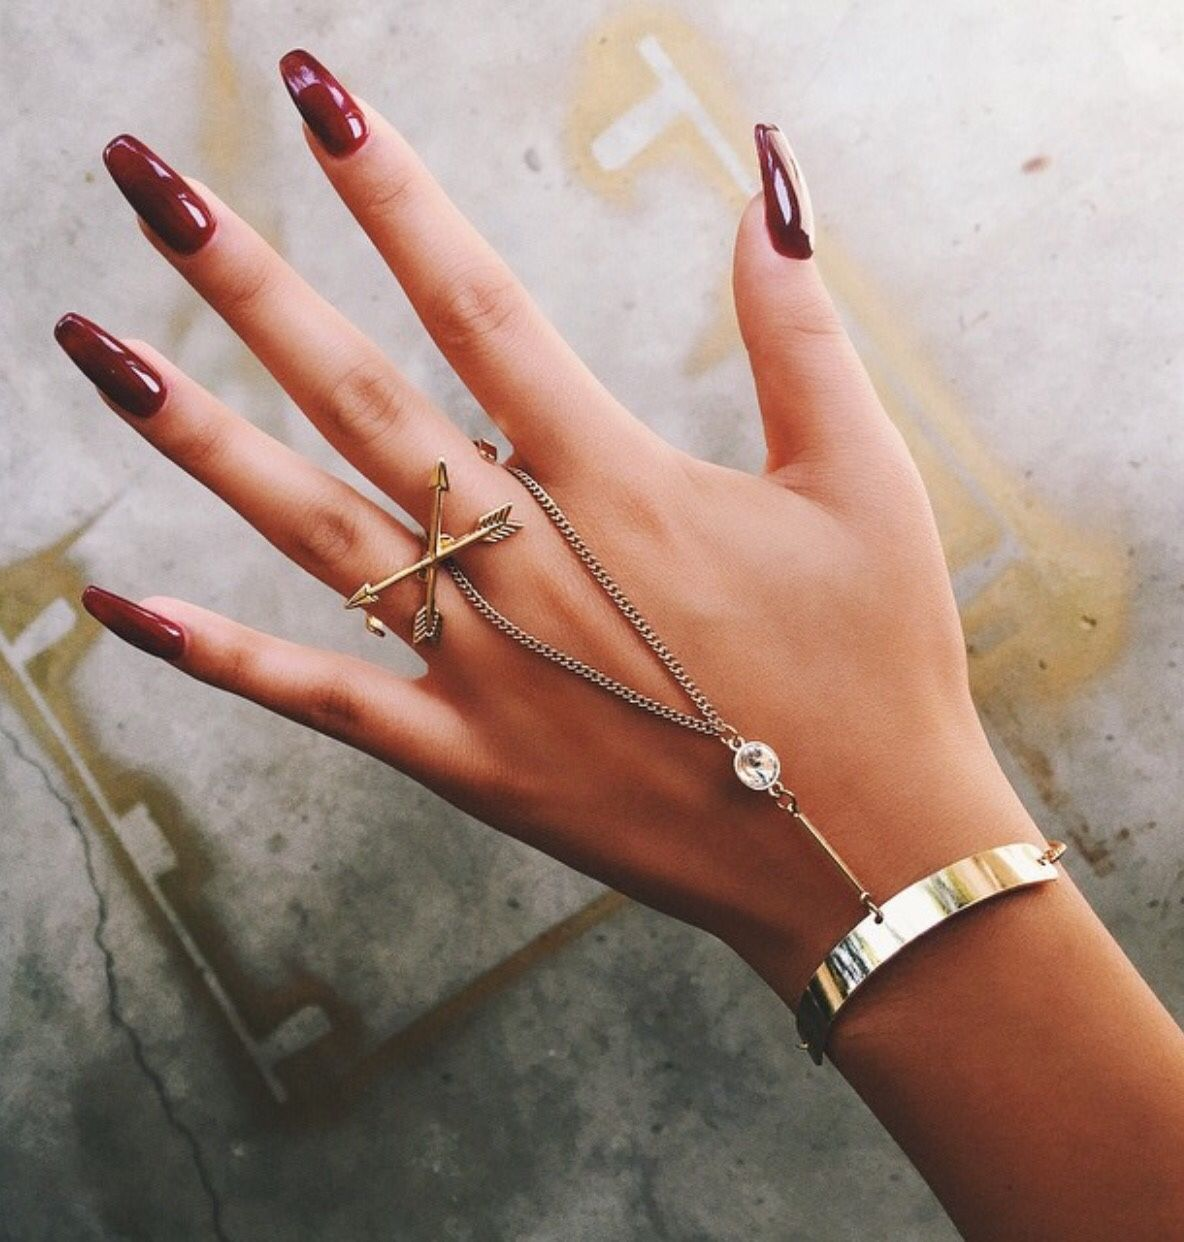 Pin by AyeeitsJaylah 🥀 on ΣXTRΔS | Pinterest | Nuggwifee, Red nails ...